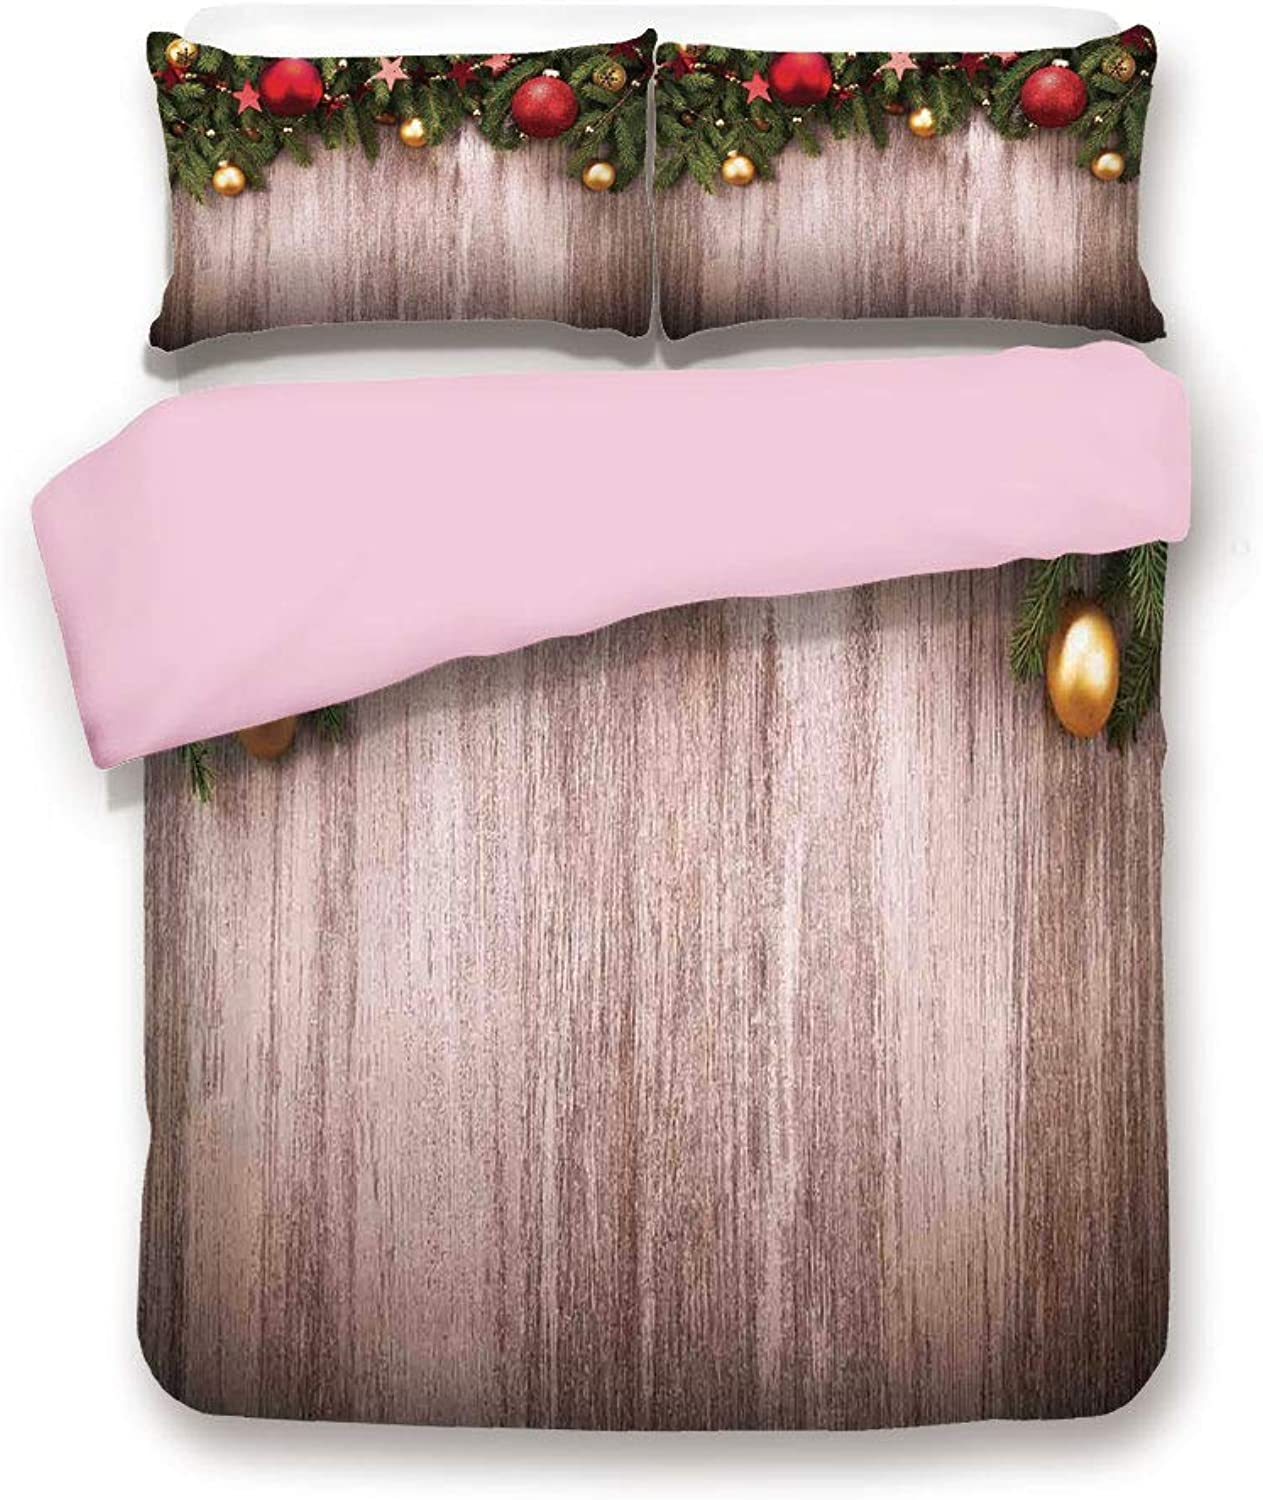 Pink Duvet Cover Set,Queen Size,Xmas Ornaments Over Wooden Rustic Board Backdrop with Stars Goodwill Print,Decorative 3 Piece Bedding Set with 2 Pillow Sham,Best Gift for Girls Women,Brown Green Red